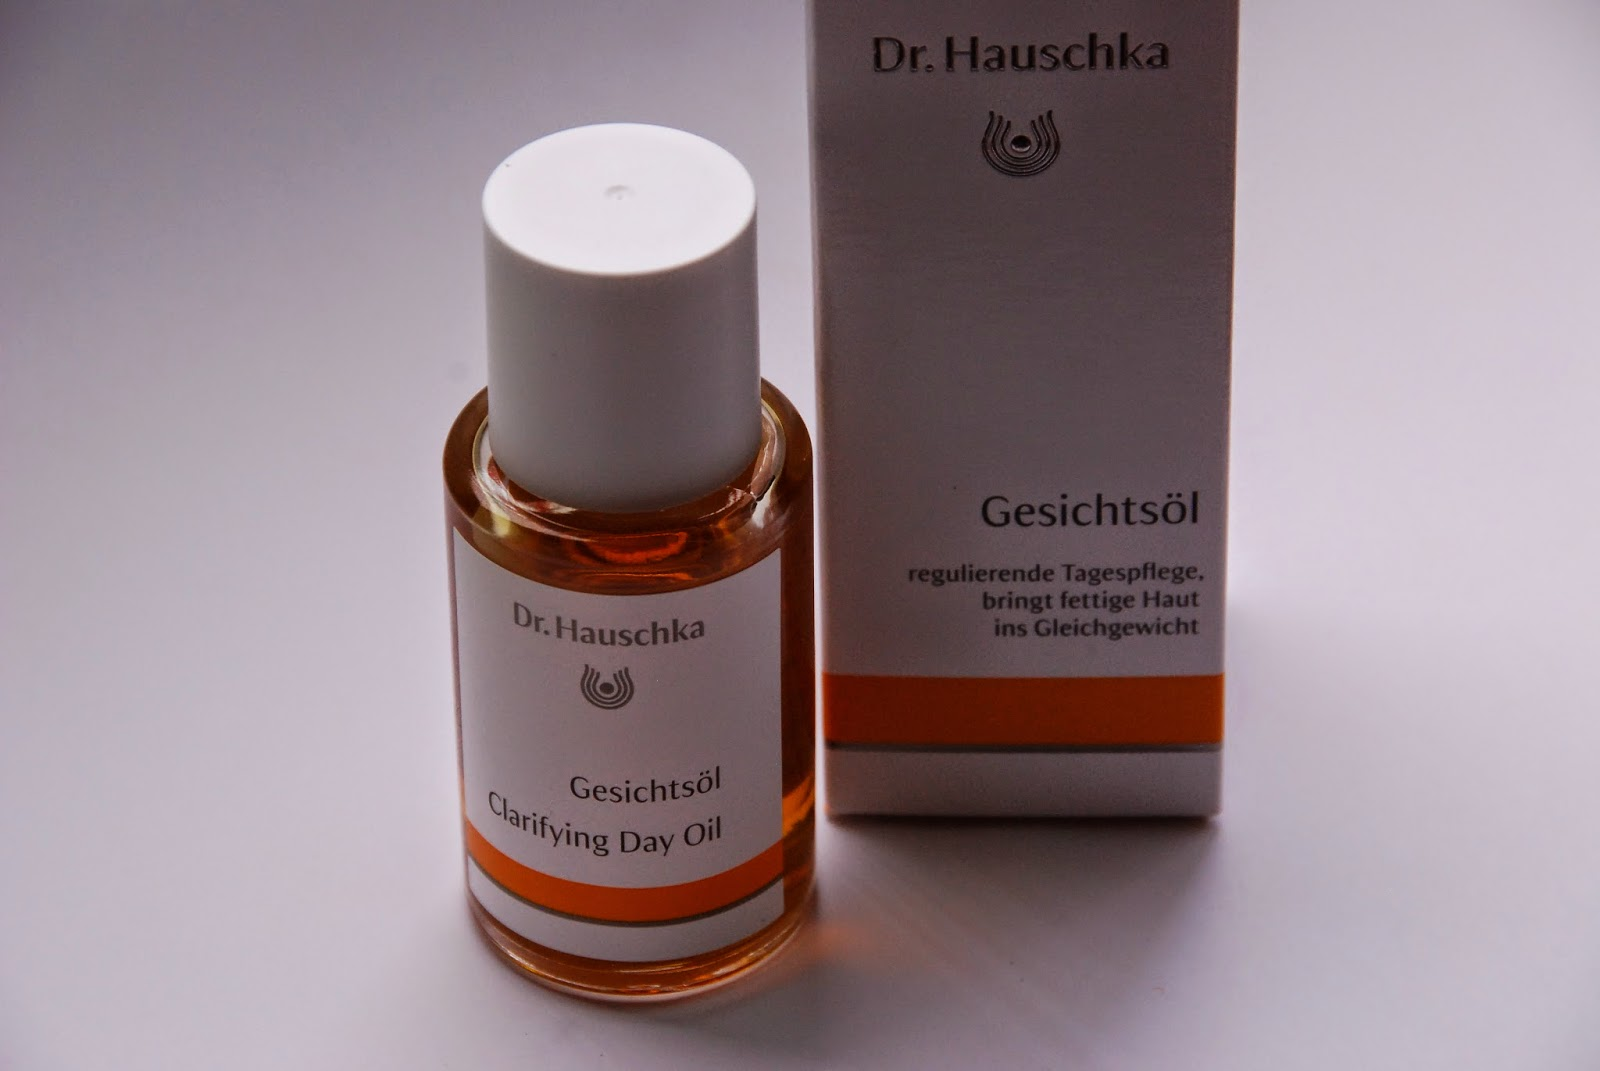 beautyglace review dr hauschka gesichts l und. Black Bedroom Furniture Sets. Home Design Ideas